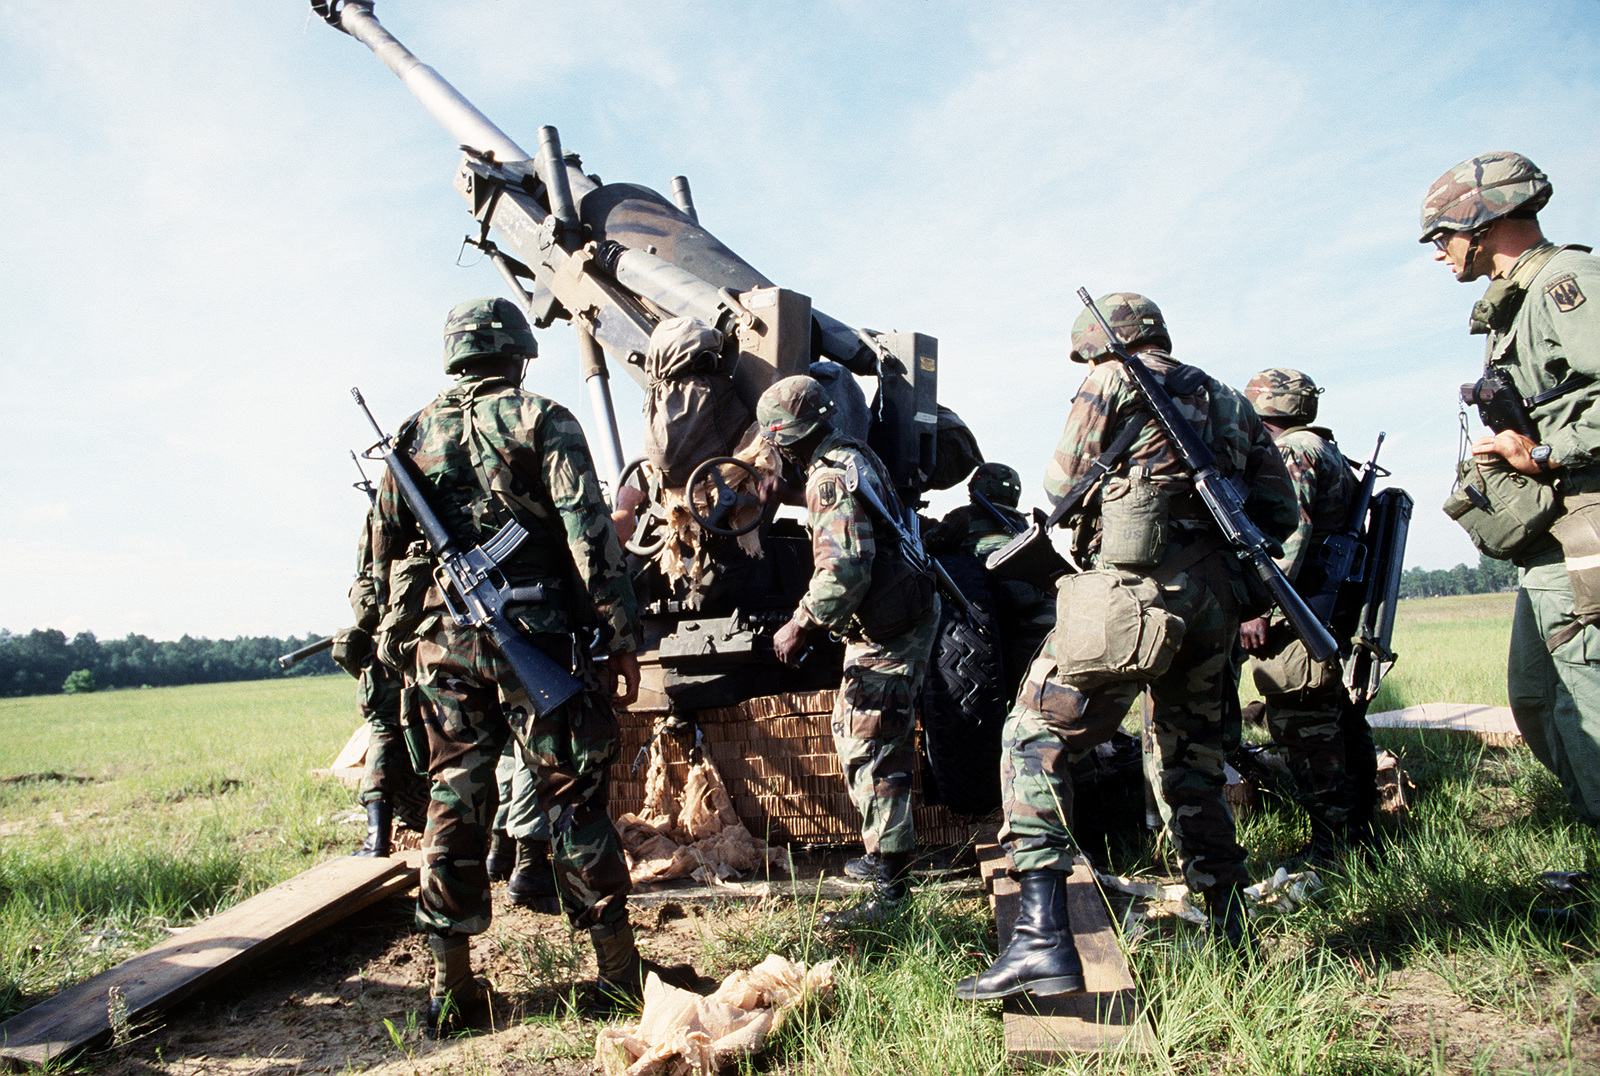 Members of the 1ST Battalion, 39th Field Artillery work together to remove an M-198 155mm howitzer from its heavy drop platform in the field during an XVIII Airborne Corps emergency deployment readiness exercise